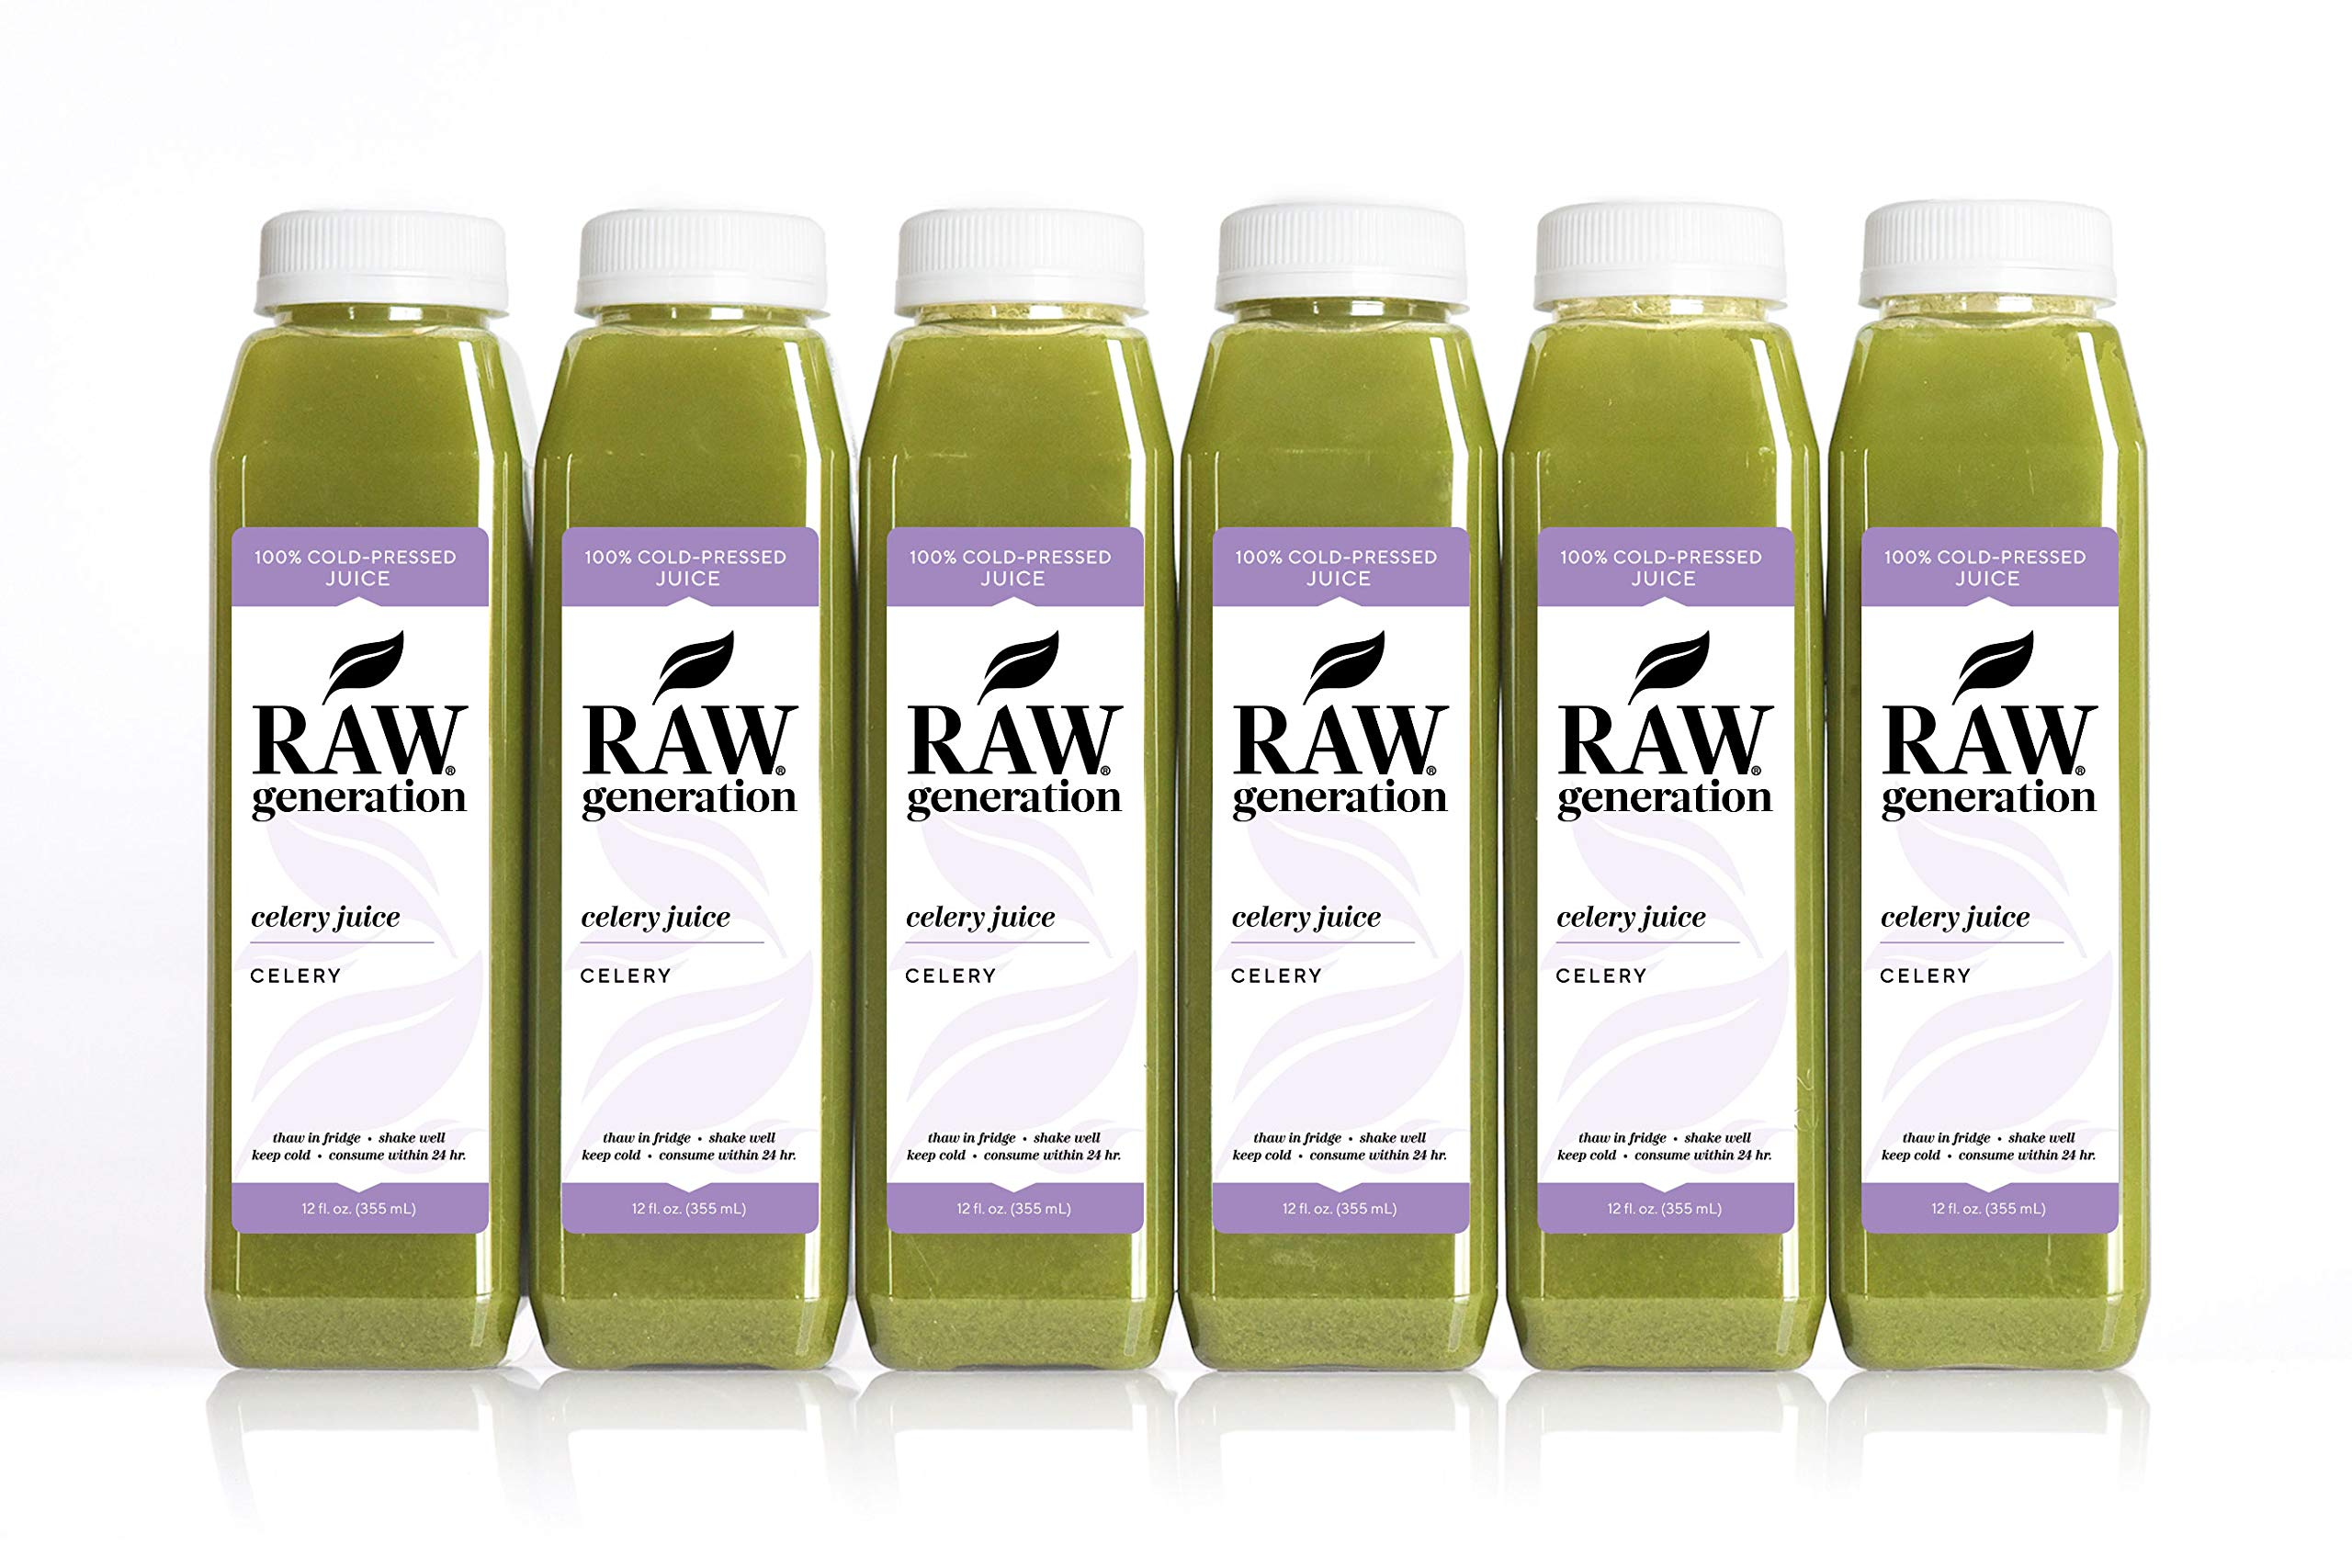 Celery Juice Daily Health Tonic by Raw Generation (18-Count) - 100% Pure Celery with a Splash of Lemon/Great for Detoxifying Your Body and Boosting Energy/Best to Use Once Daily on Empty Stomach